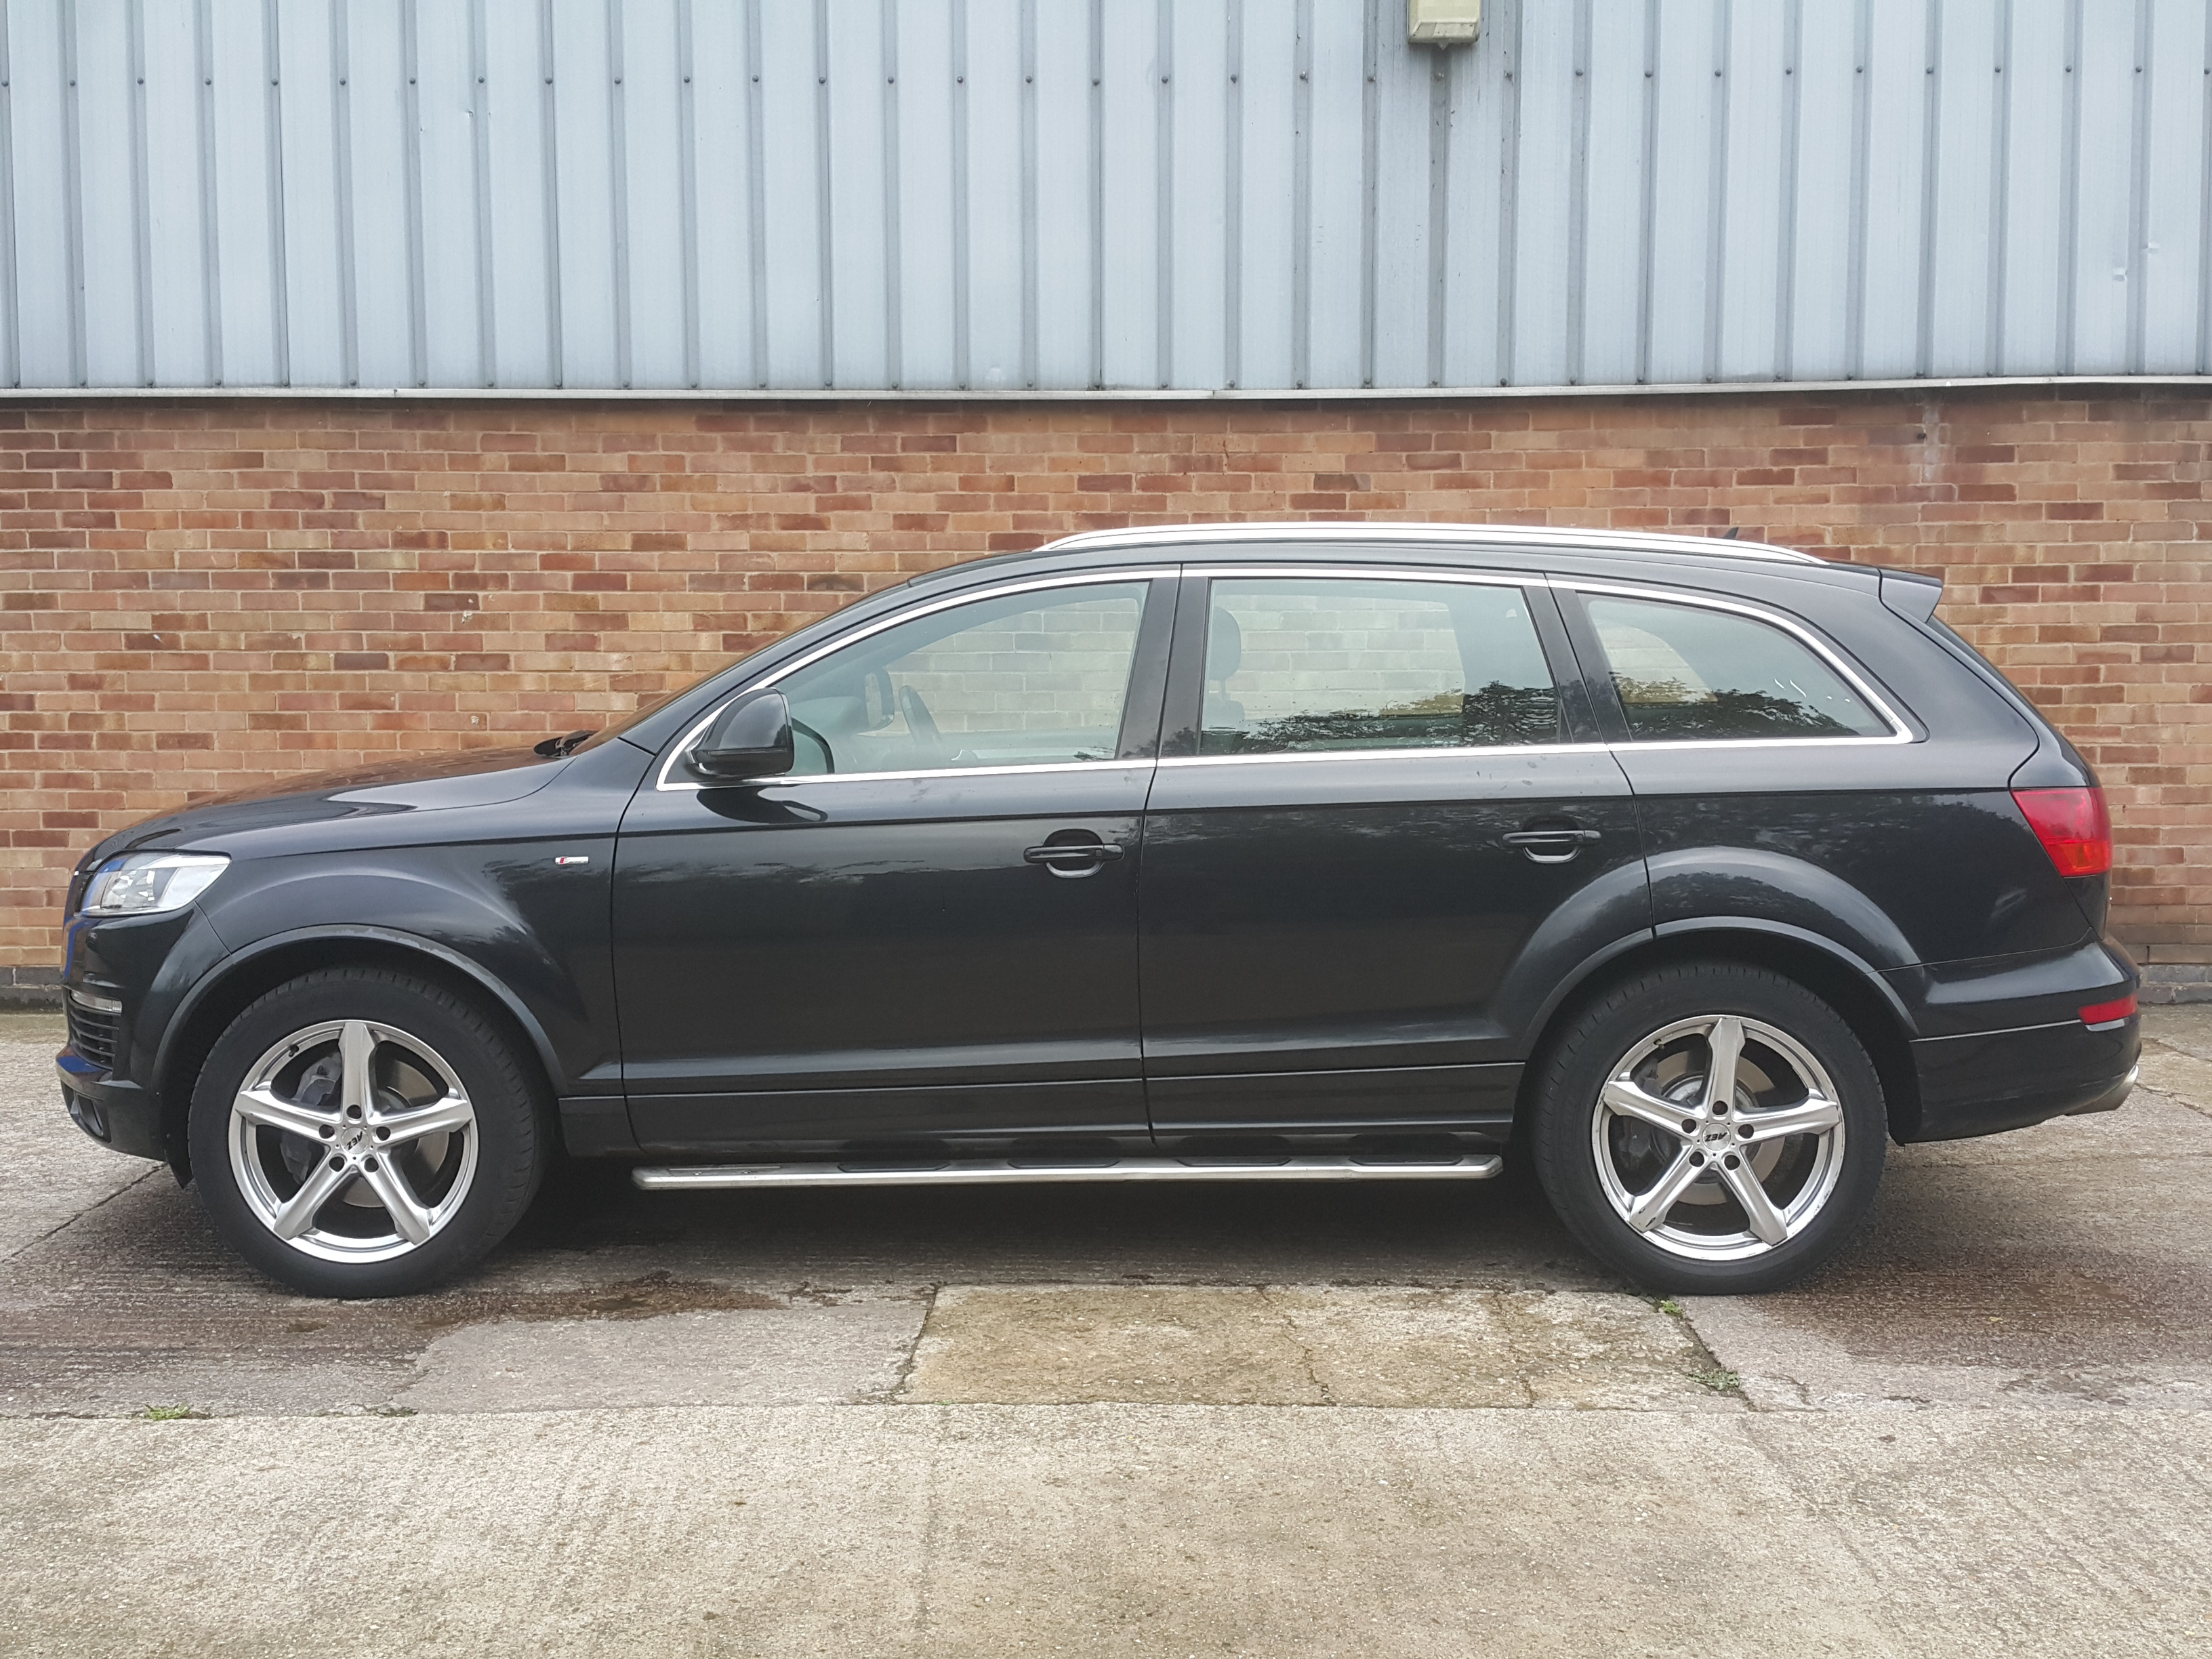 audi q7 s line tdi quattro 4x4 auto diesel 125000 miles 7 bp no vat very high spec 7. Black Bedroom Furniture Sets. Home Design Ideas